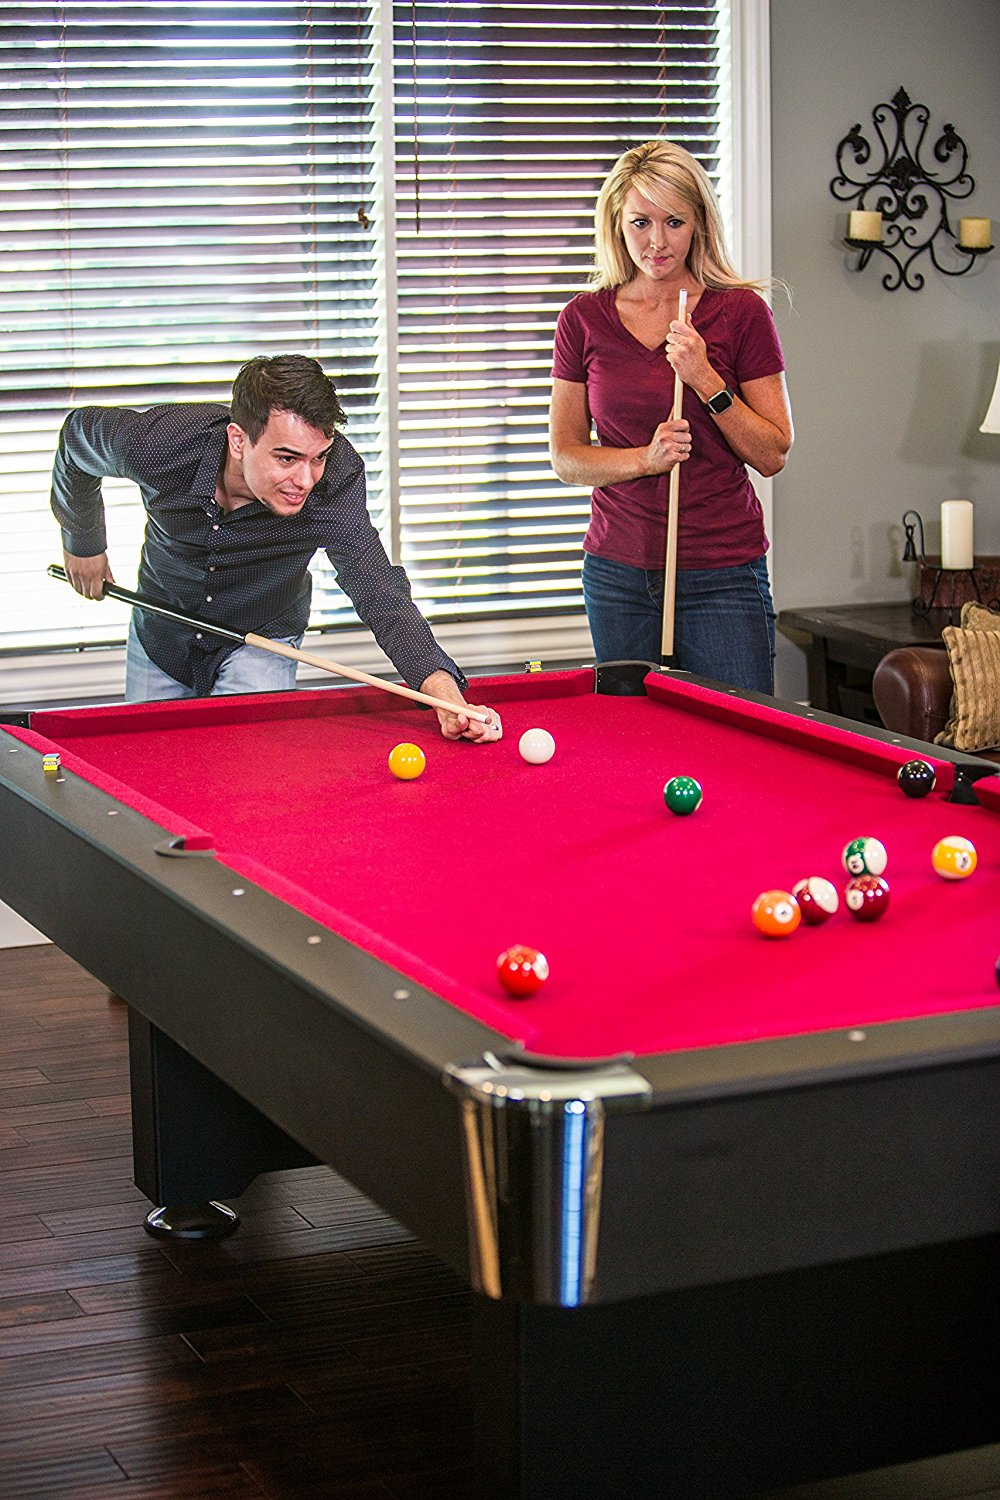 Mizerak Pool Table | Mizerak Outdoor Pool Table | Pool Table 6x3